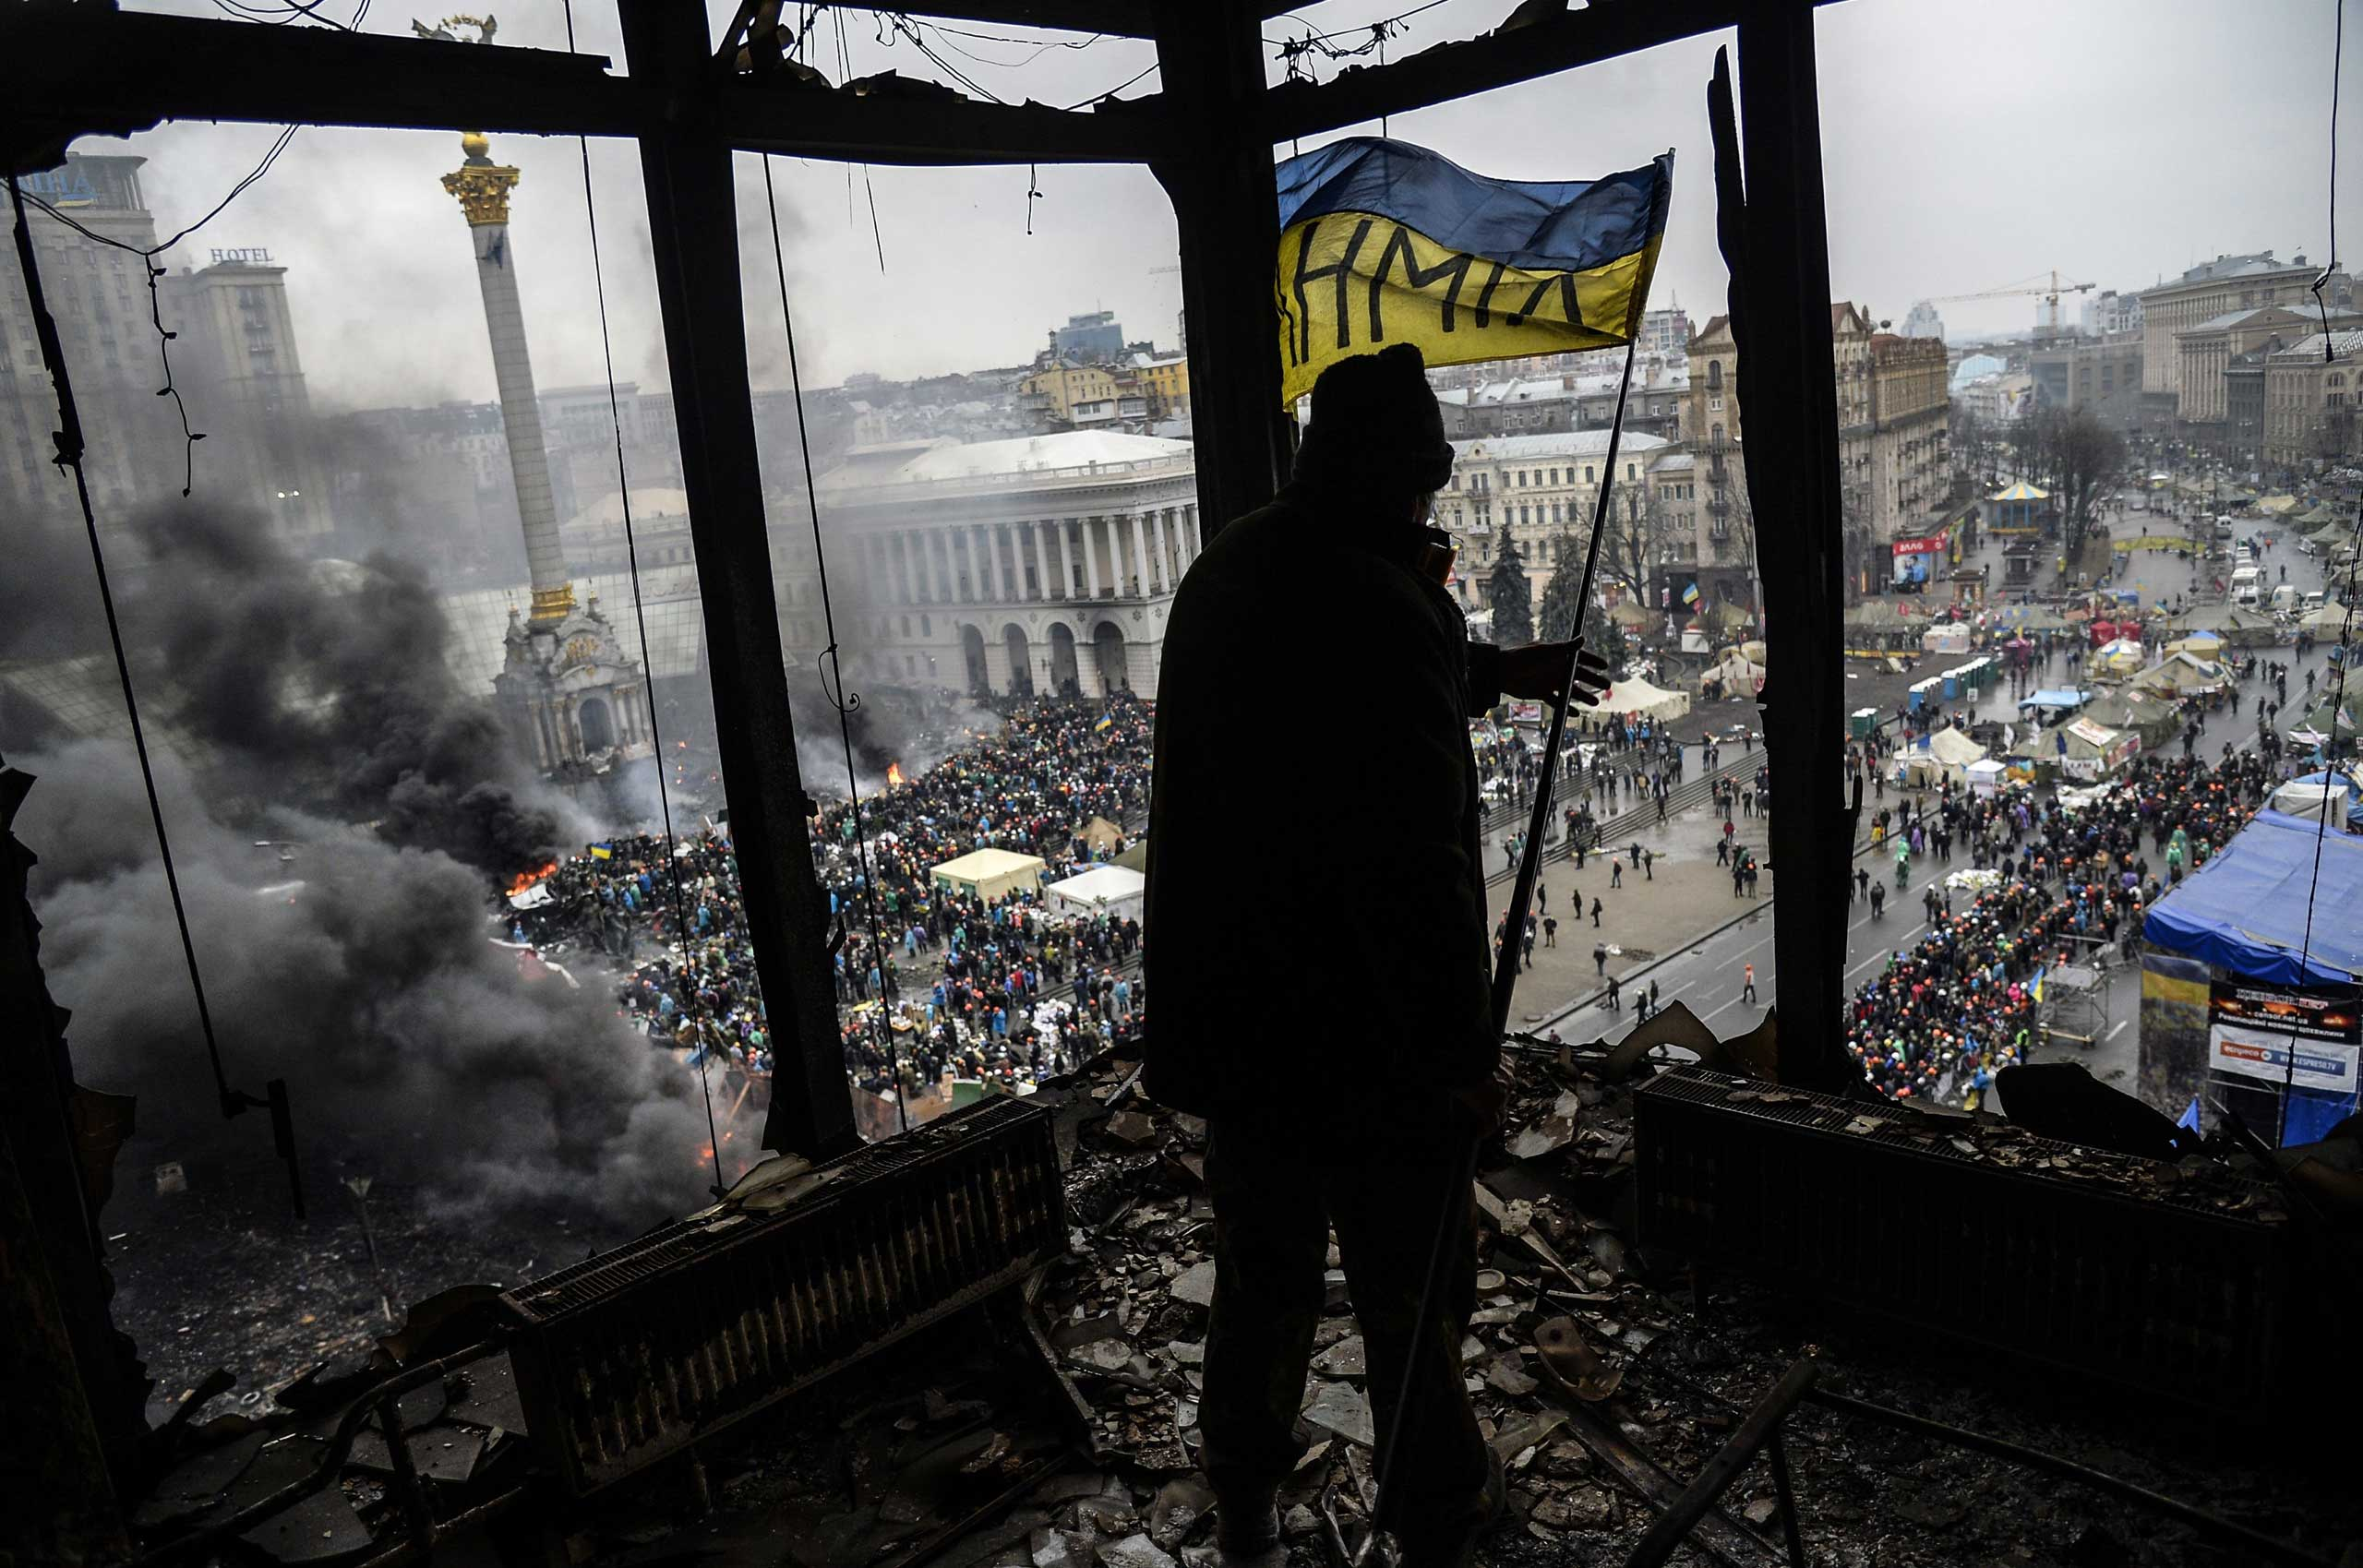 A protester holds an Ukranian national flag from a burned building during a face-off against police on Feb. 20, 2014 in Kiev, Ukraine.